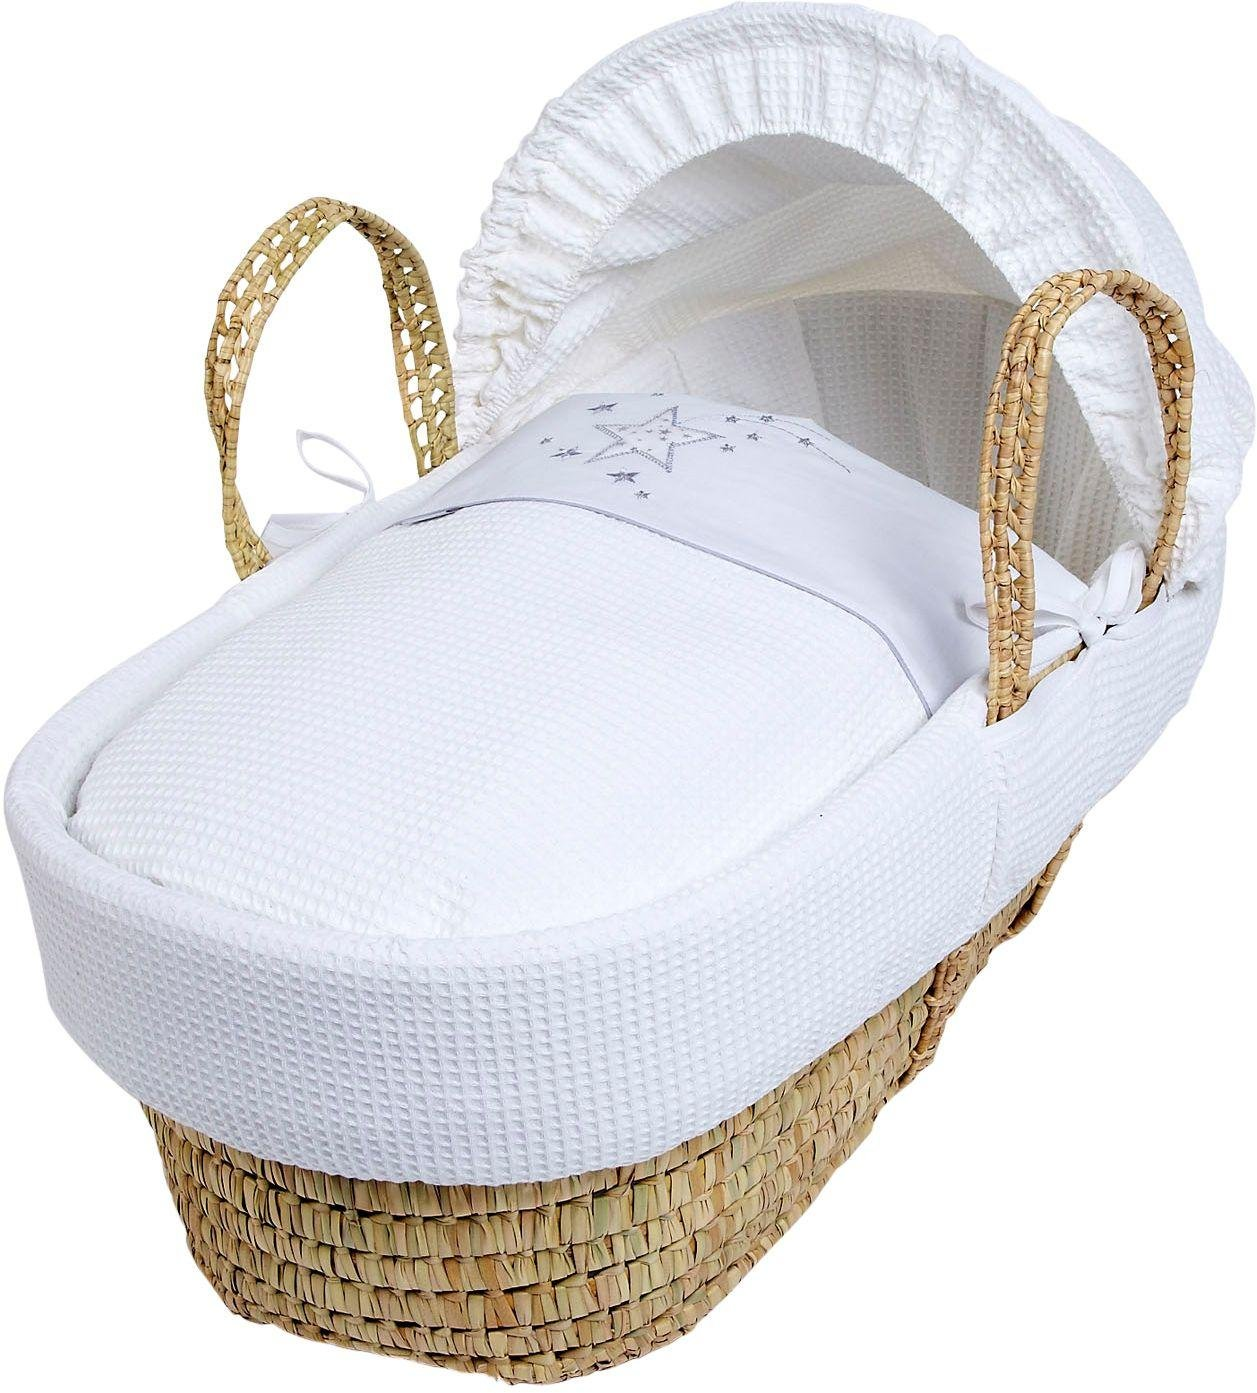 Handmade Wicker Moses Basket : Clair de lune stardust white wicker moses octer ?